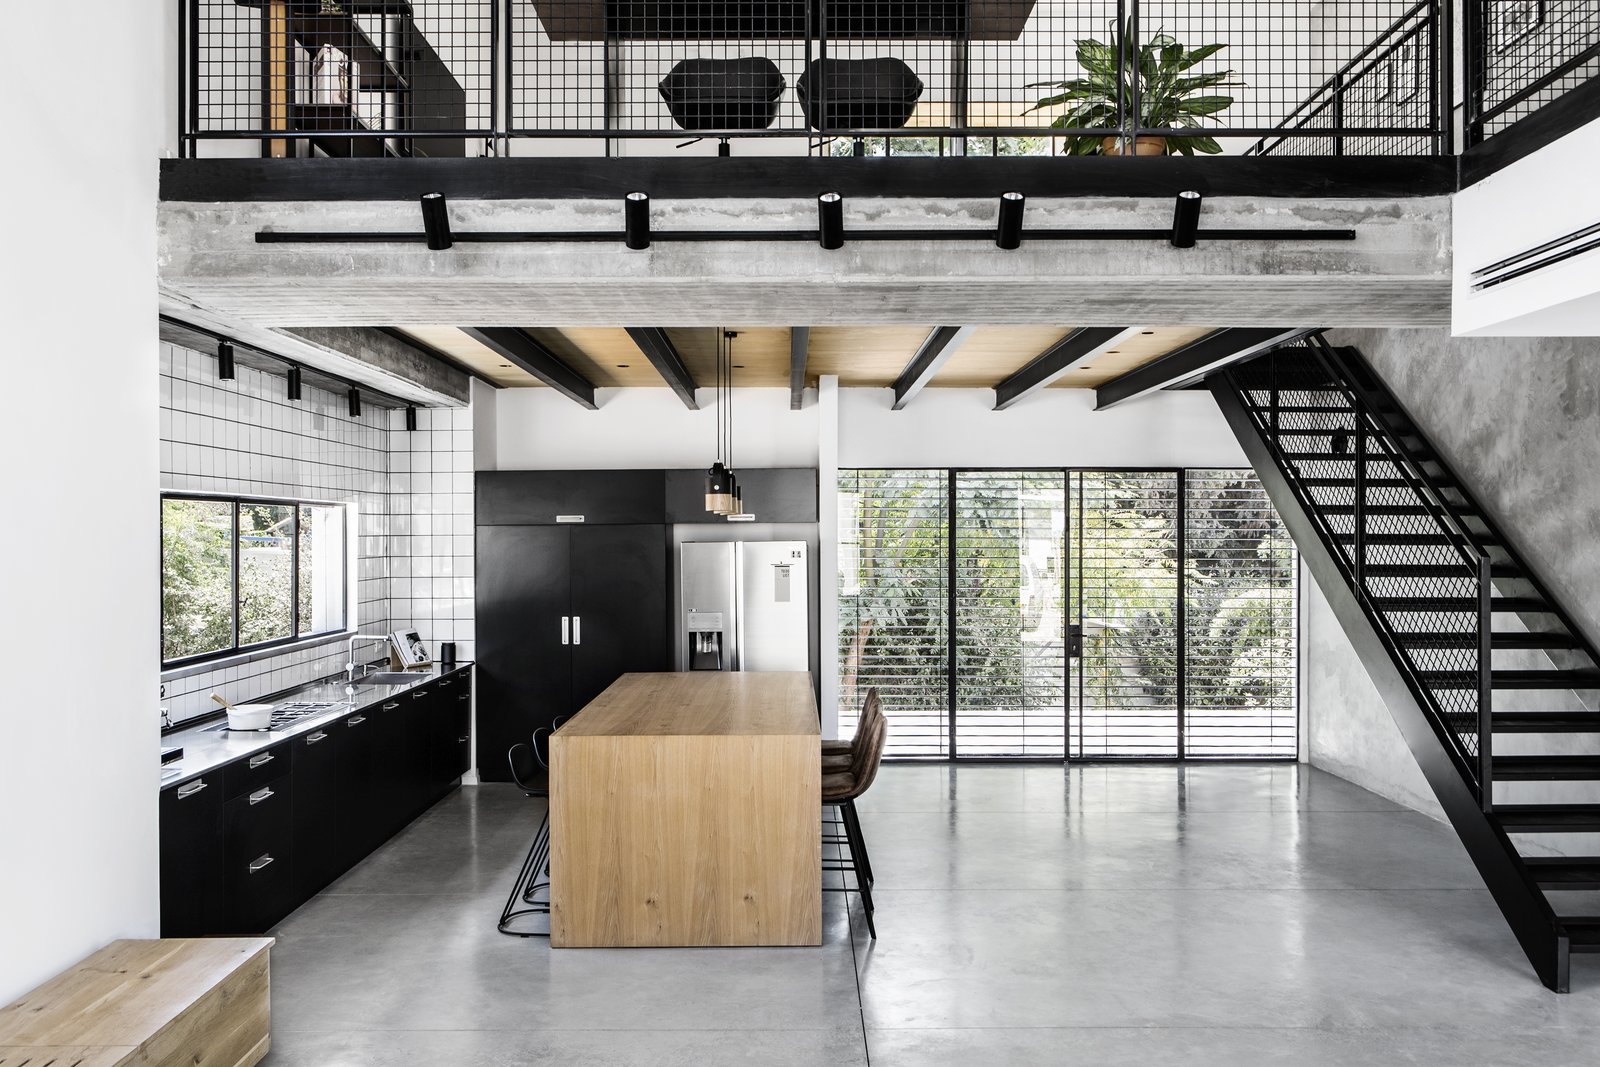 Kitchen, Refrigerator, Cooktops, Metal Counter, Colorful Cabinet, Concrete Floor, Ceramic Tile Backsplashe, Ceiling Lighting, and Undermount Sink Both floors.   Nir Am House by Shir Shtaigman